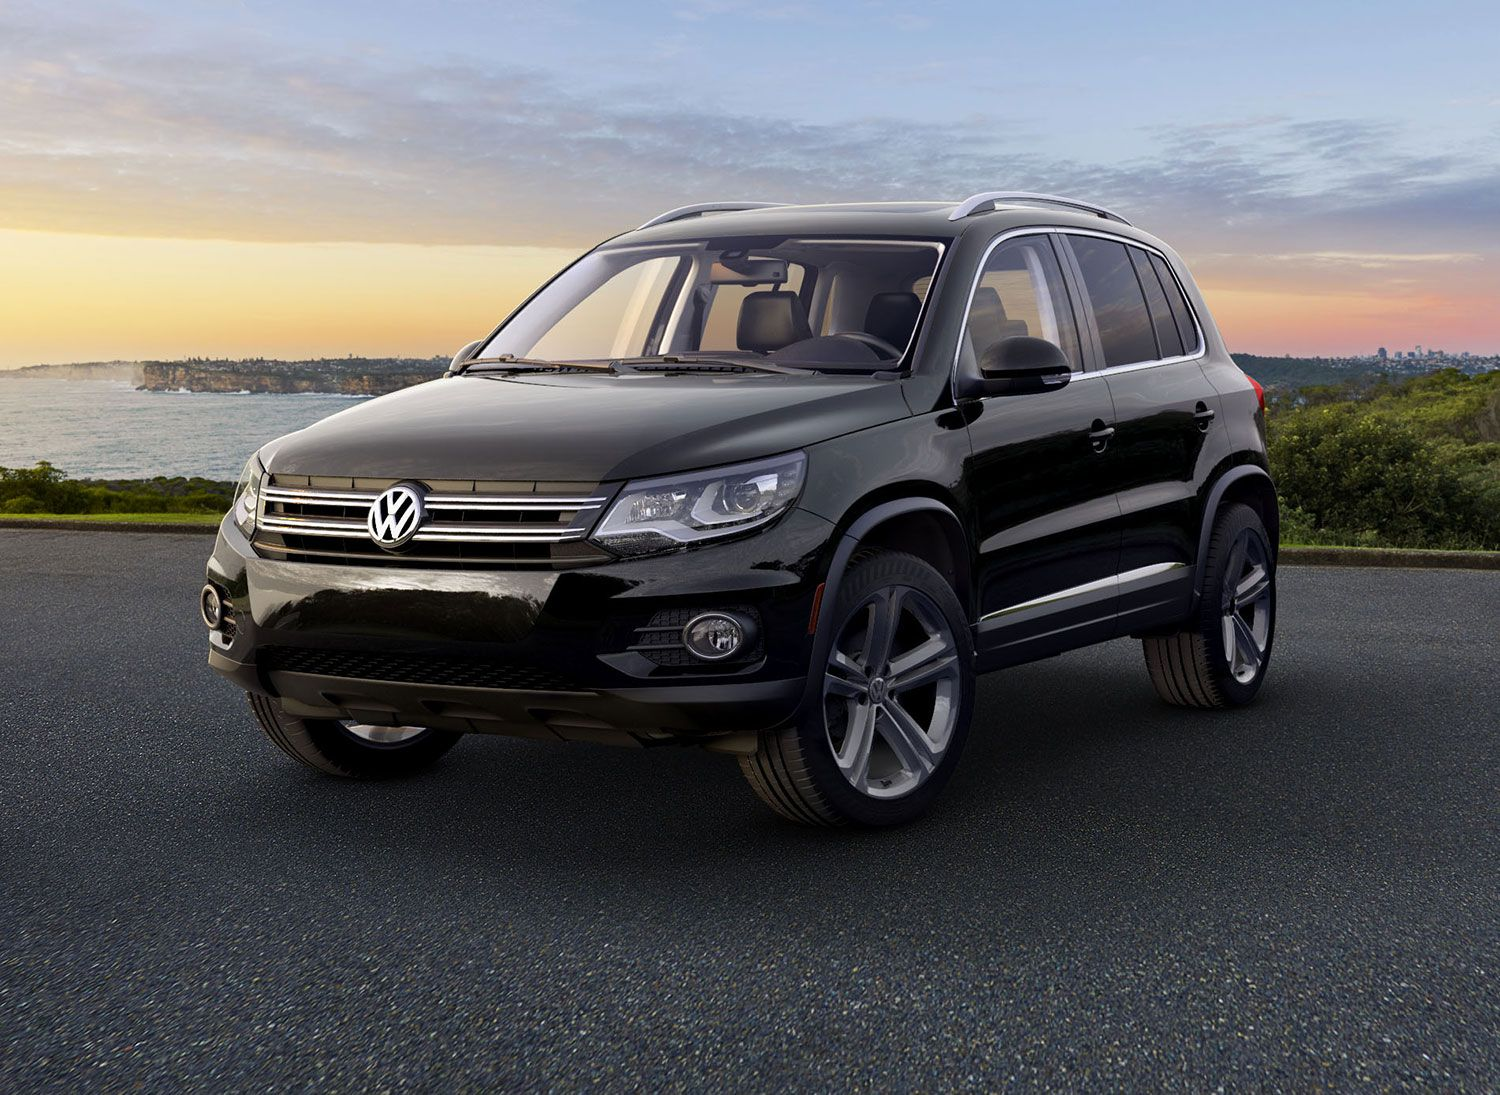 2017 Volkswagen Tiguan In Black